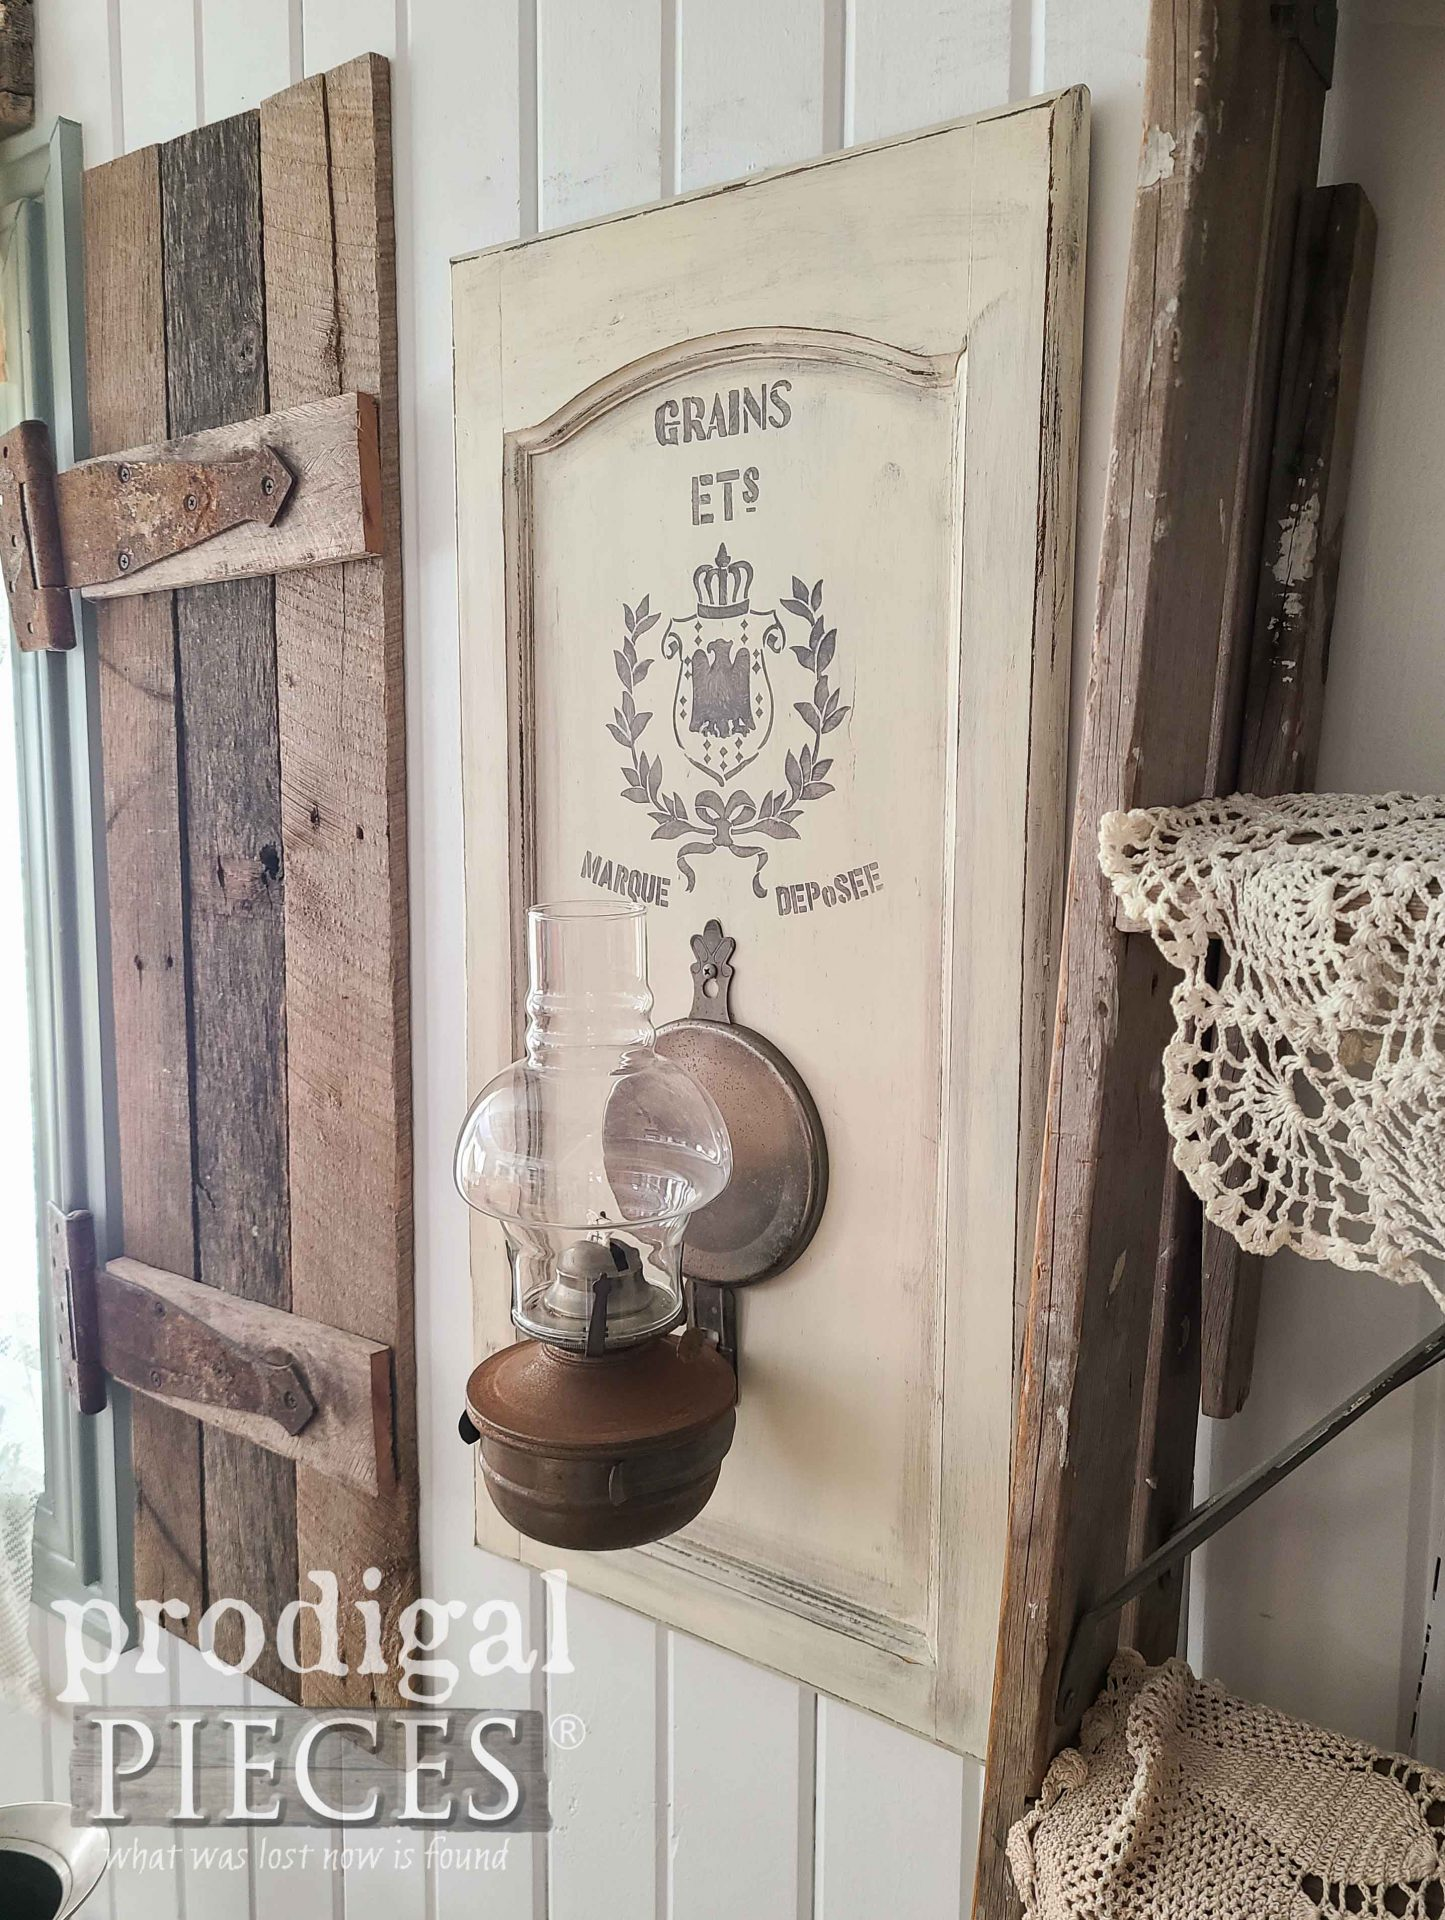 Rustic Farmhouse Oil Lamp Decor from Salvaged Finds by Larissa of Prodigal Pieces | prodigalpieces.com #prodigalpieces #farmhouse #rustic #diy #salvaged